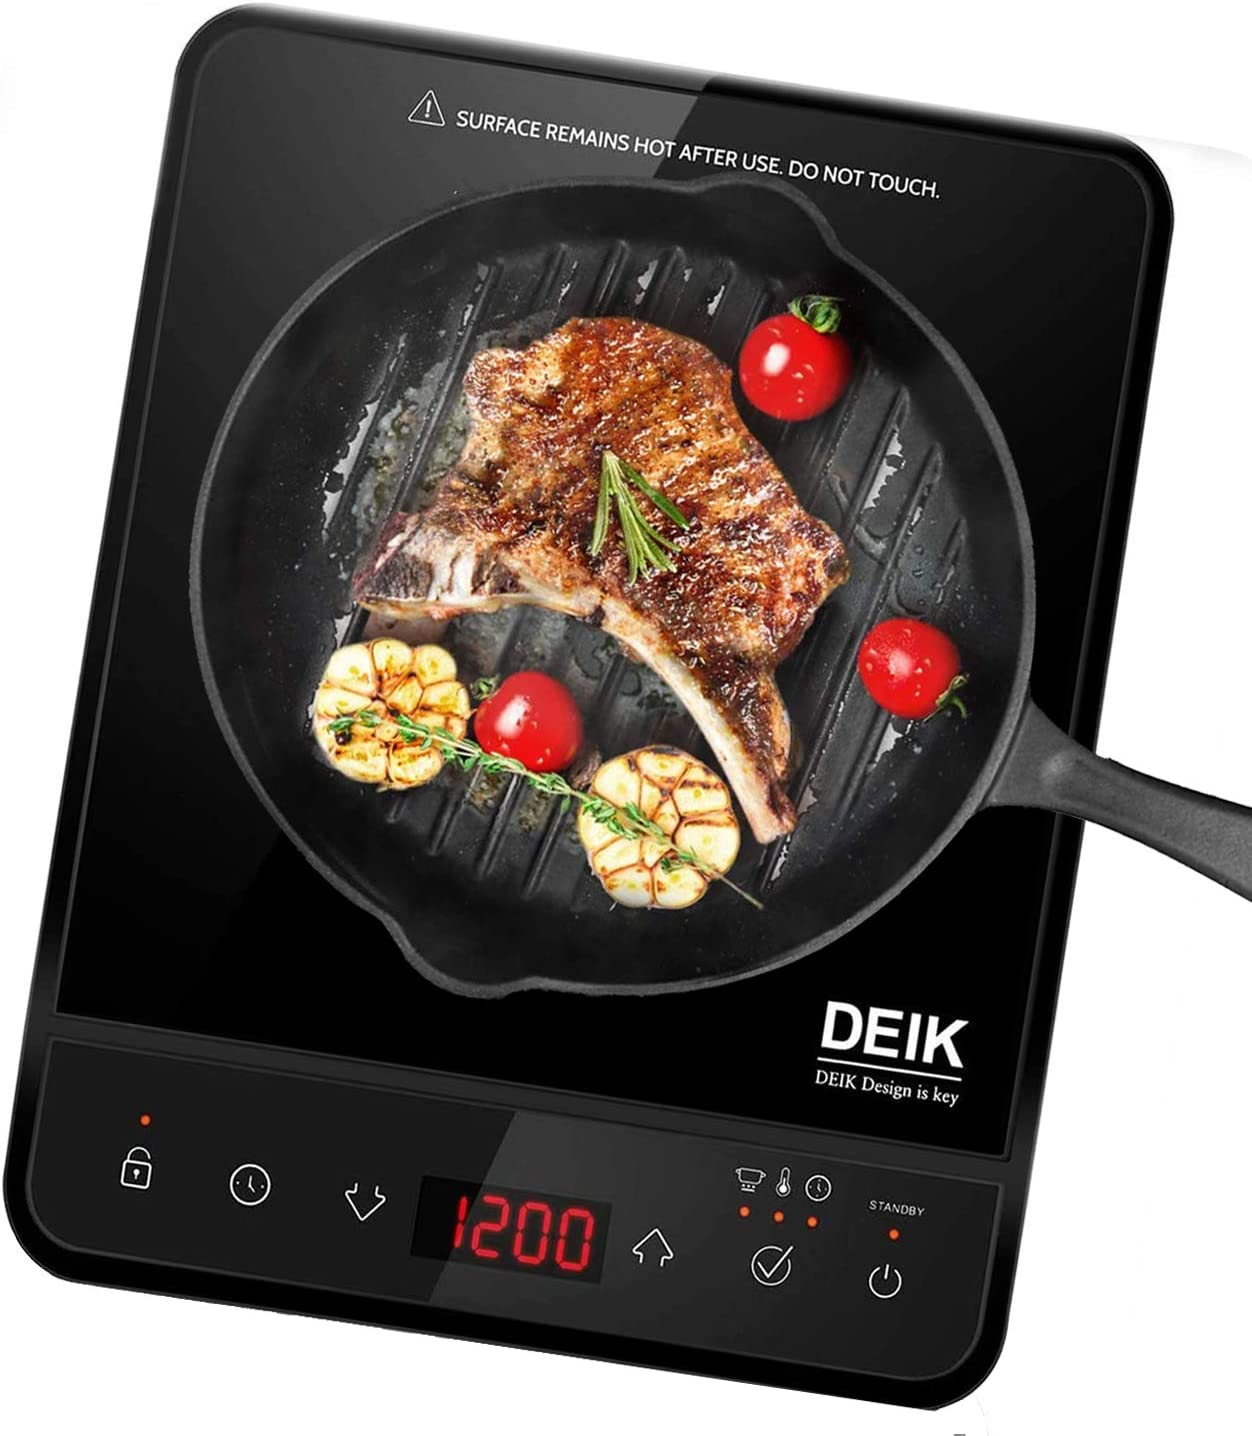 Portable Induction Cooktop, Deik 1800W Full Color Touchscreen Interface Induction Cooker with 10 Temperature & 15 Power Level Settings, Induction Burner with Timer, and Child Safety Lock, Black